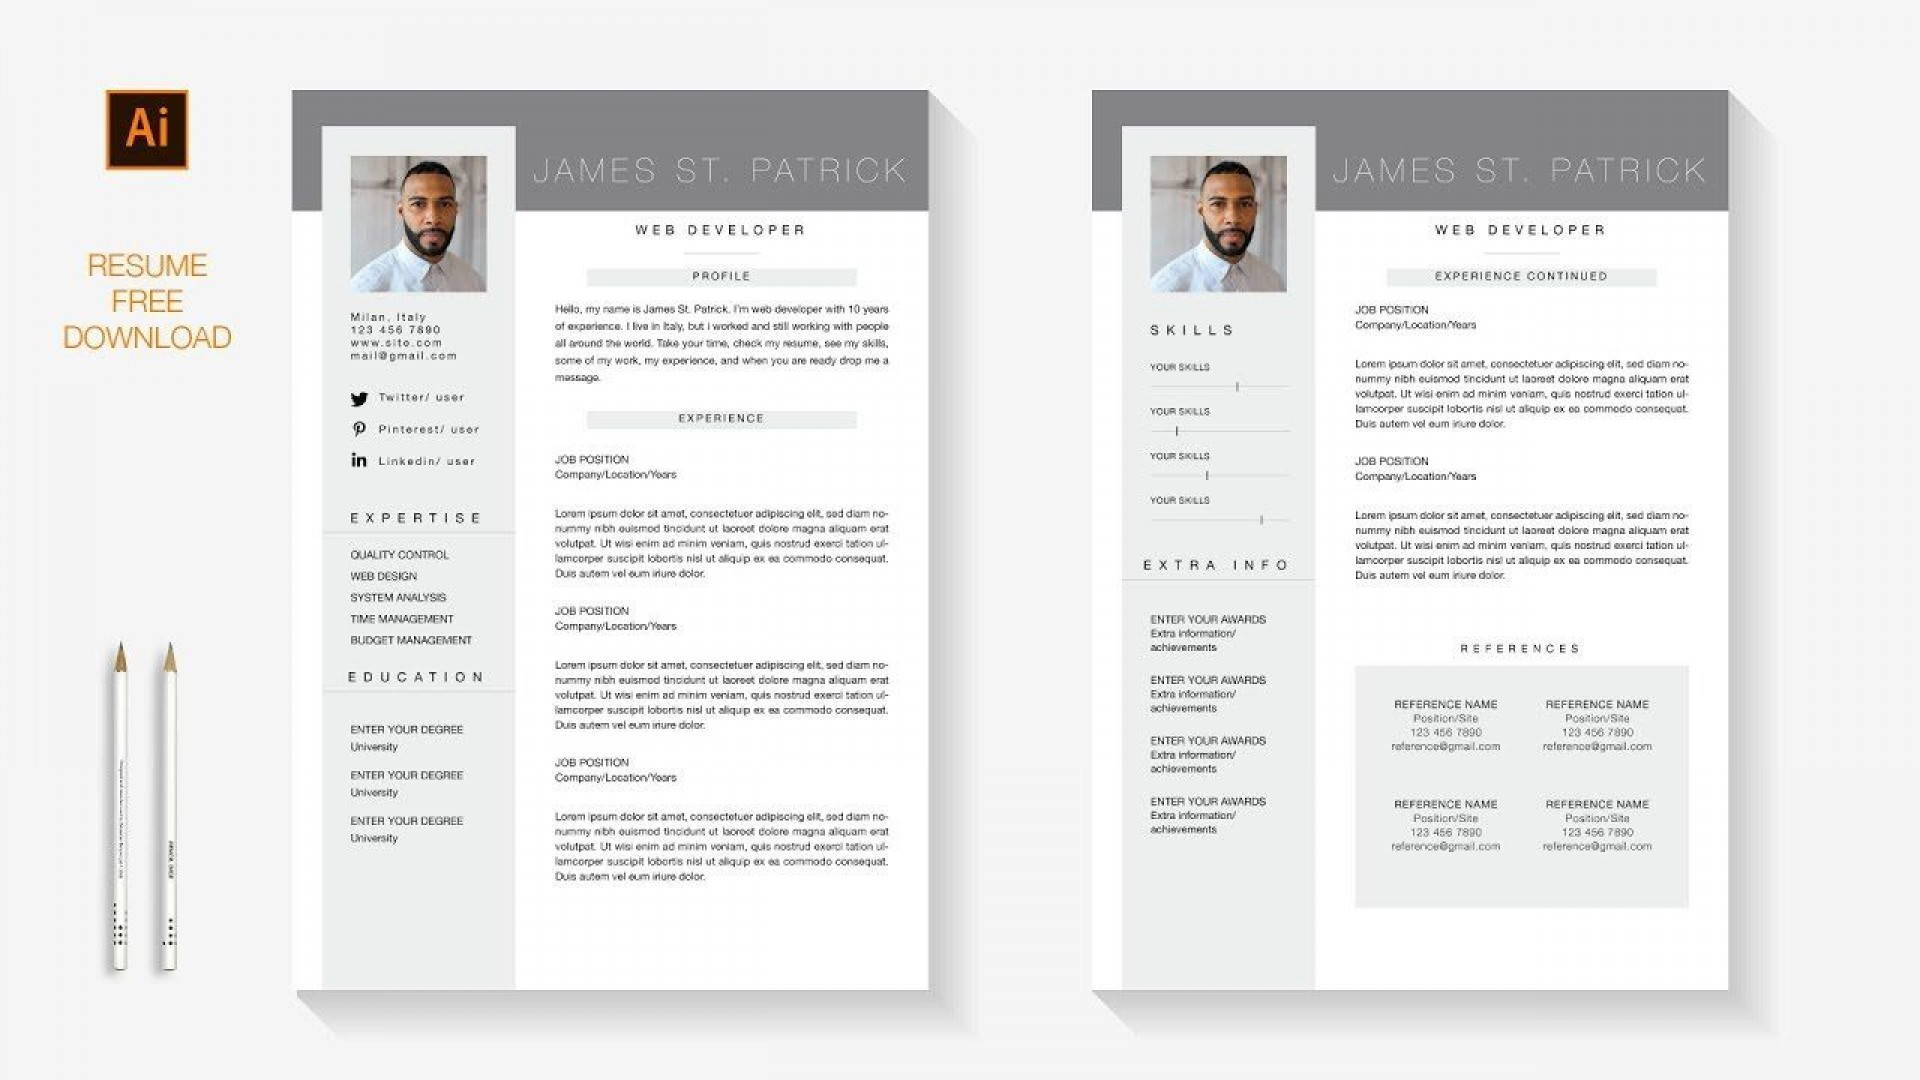 007 Incredible Free Resume Template For Page High Definition  Pages Apple Mac1920